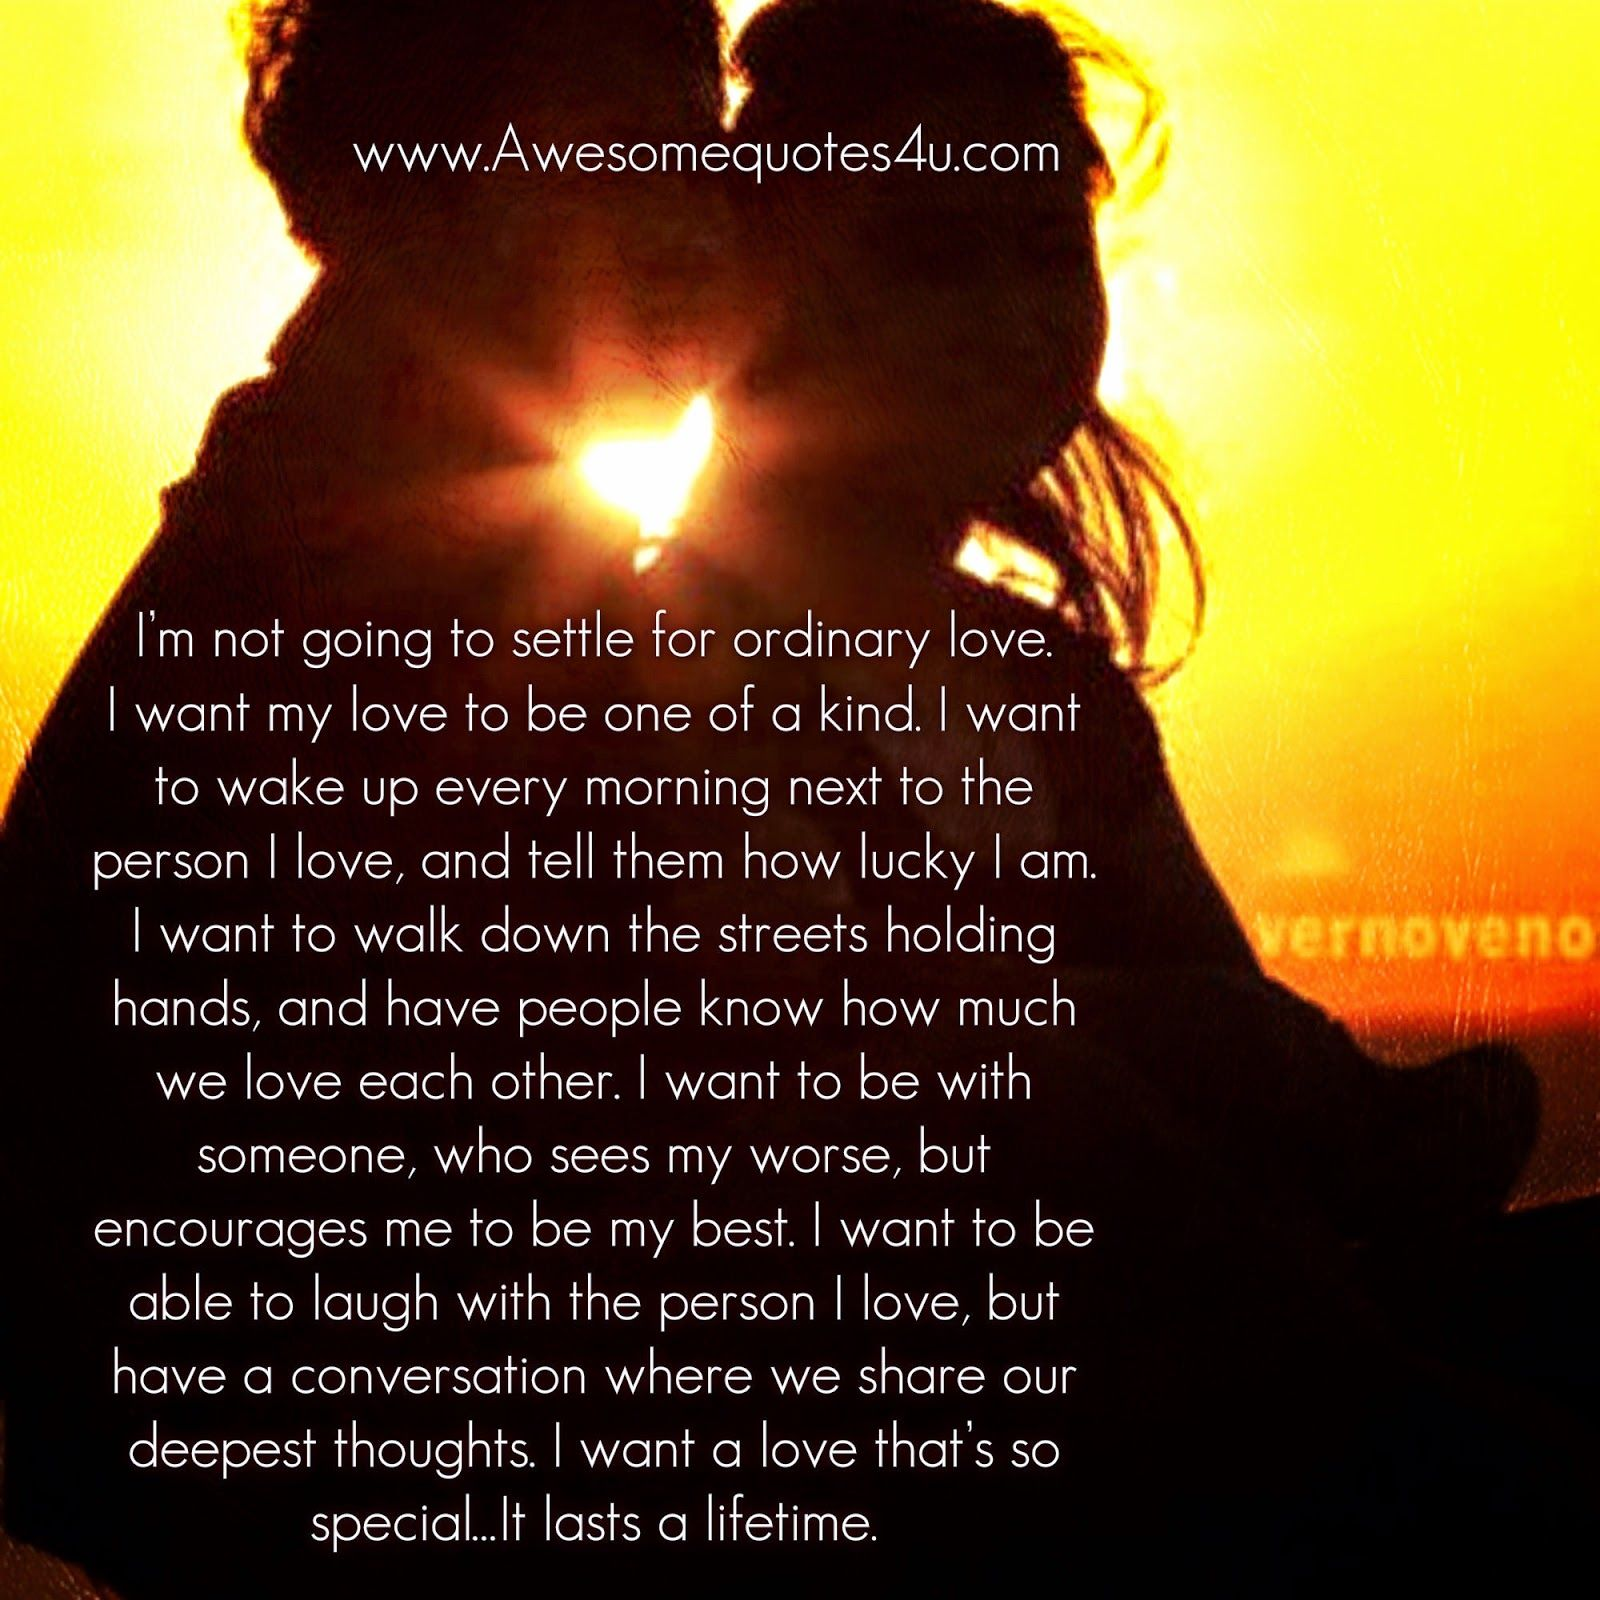 80ee09ad5cf Awesome Quotes  I want a love that will last a lifetime.